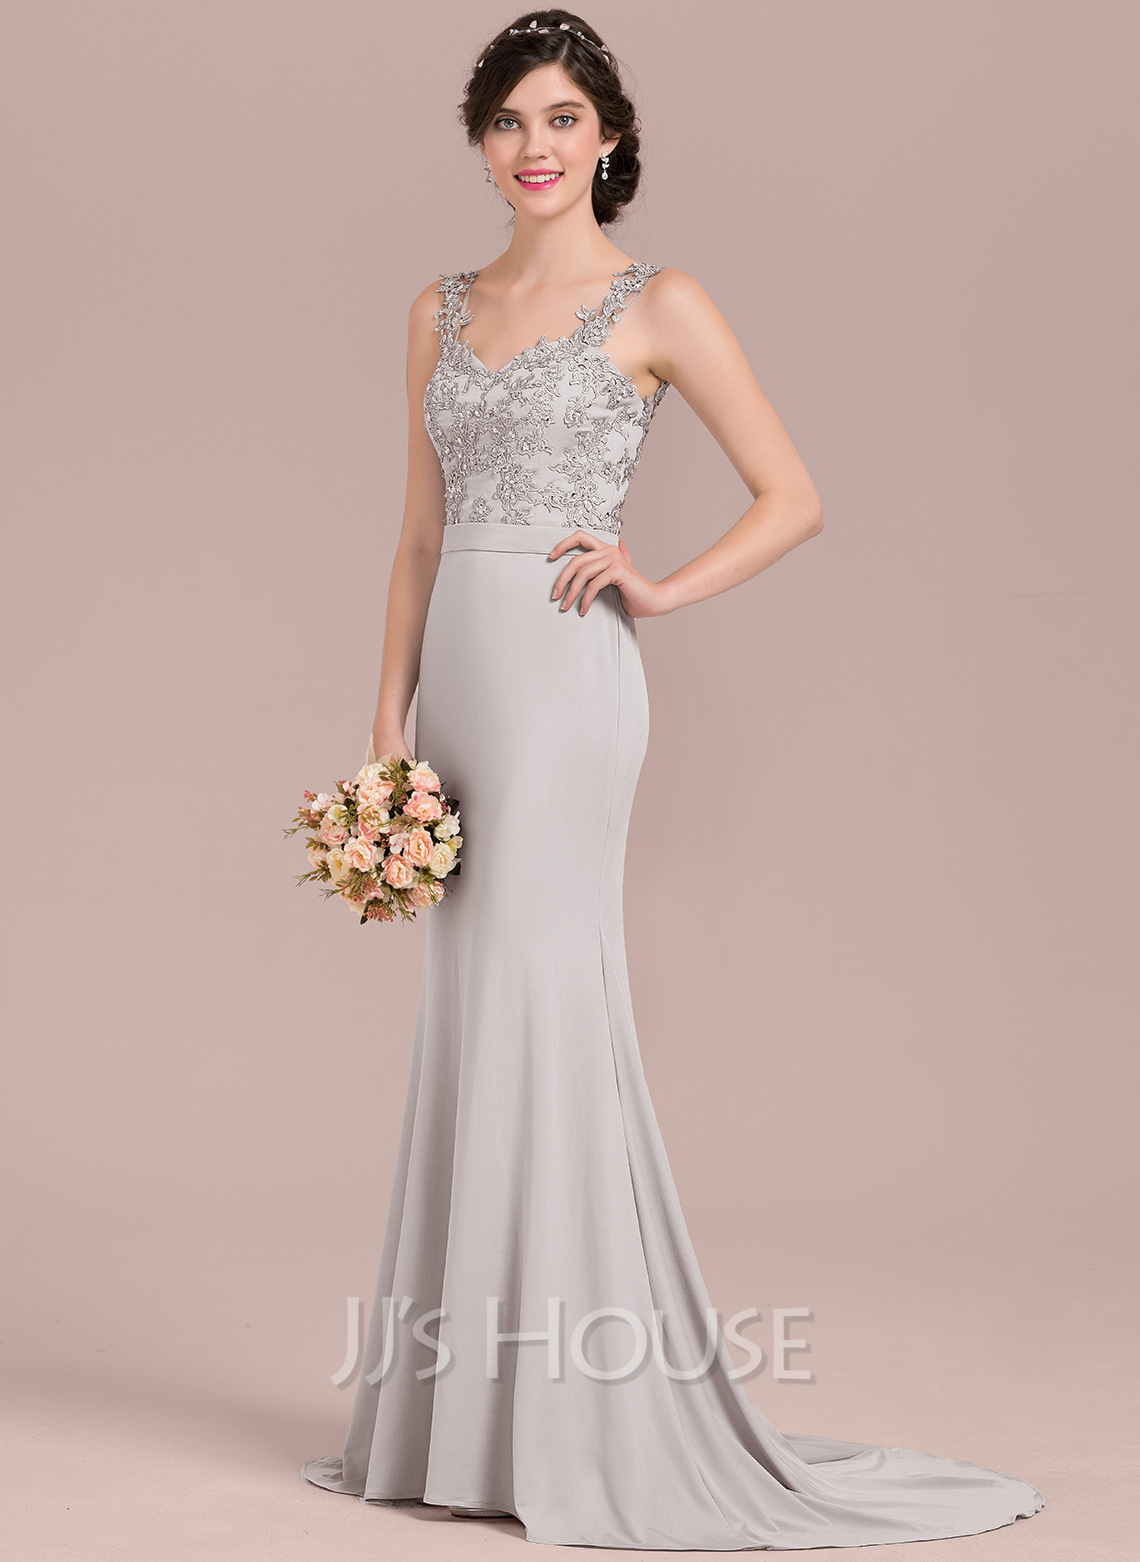 b9566bece1 Trumpet Mermaid Sweetheart Sweep Train Lace Jersey Bridesmaid Dress With  Beading Sequins. Loading zoom